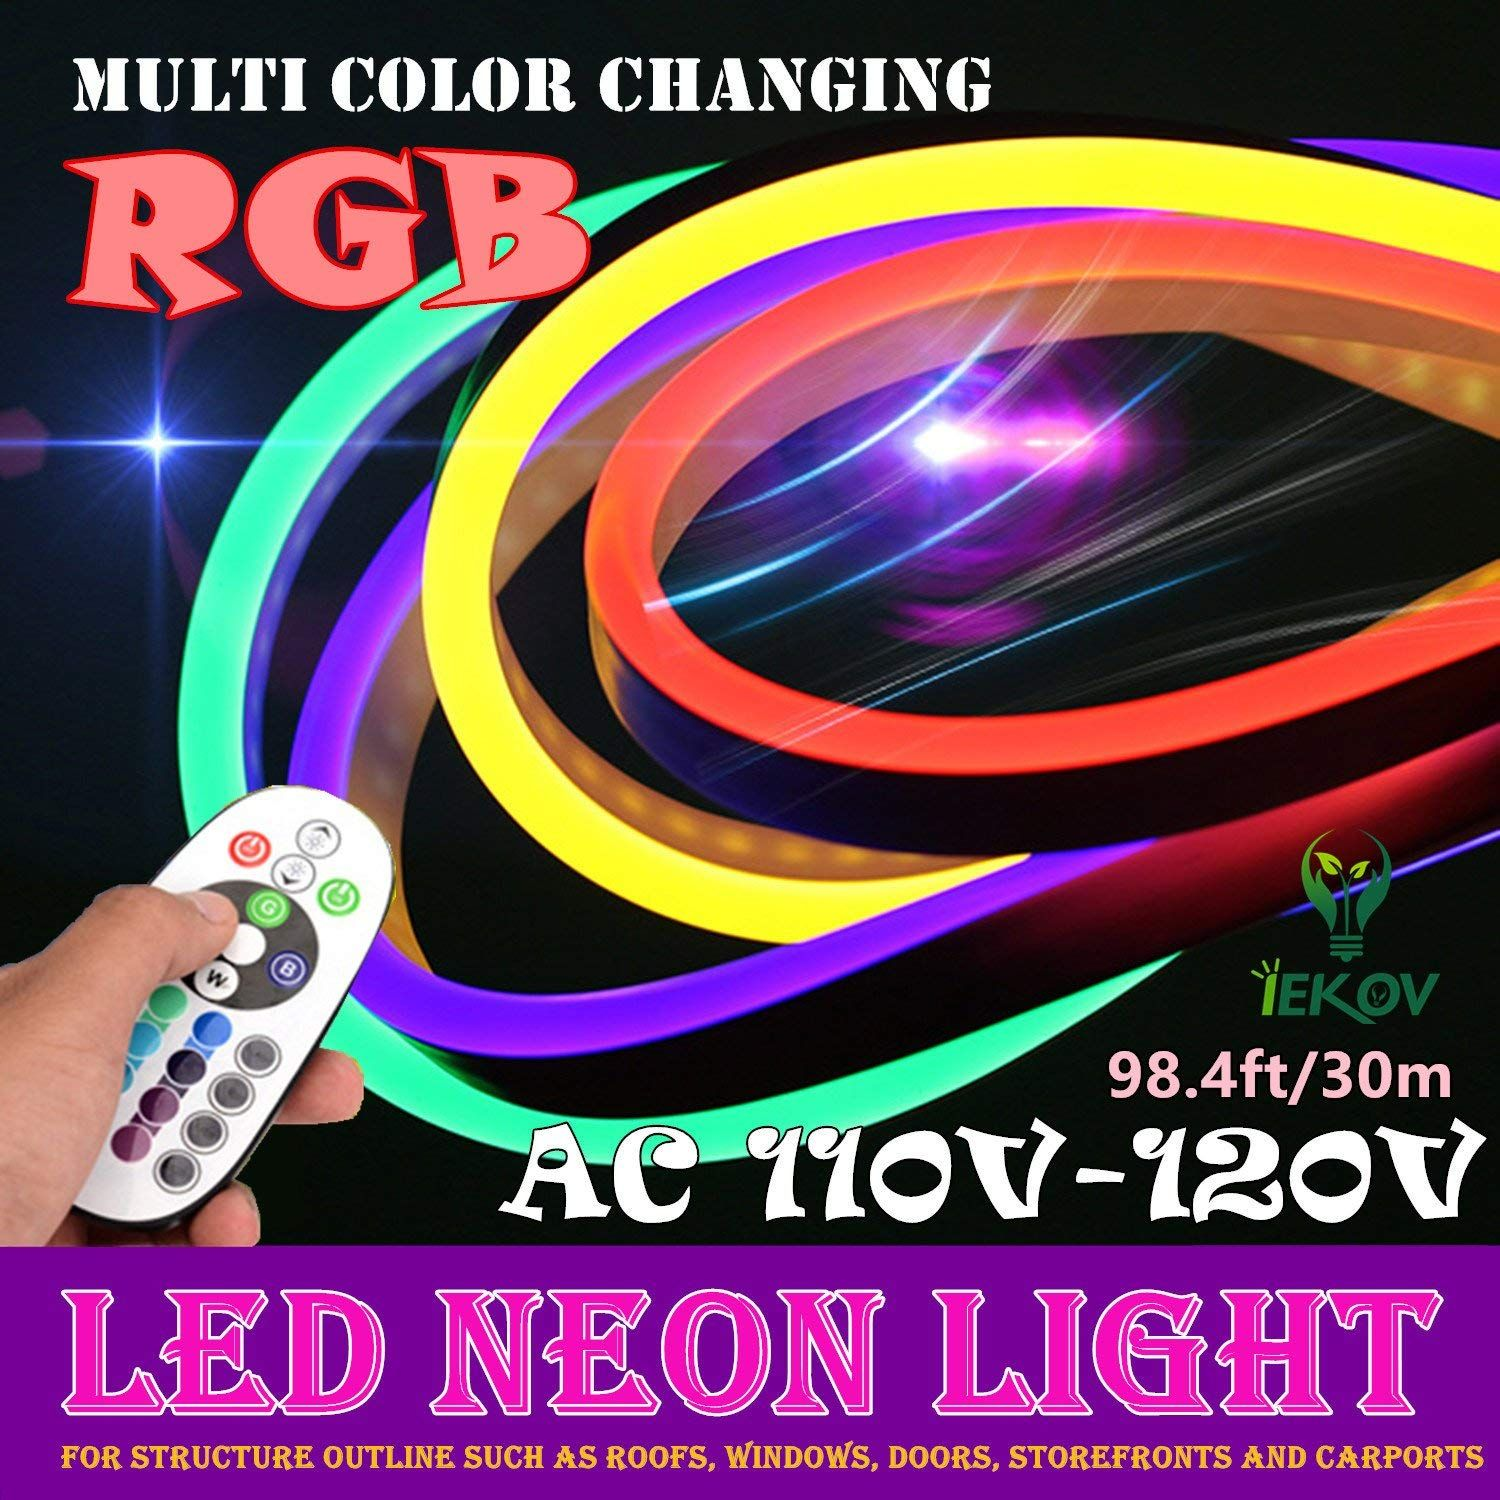 Led Neon Light Iekov Trade Ac 110 120v Flexible Rgb Led Neon Light Strip 60 Leds M Waterproof Multi Led Neon Lighting Led Rope Lights Rgb Led Strip Lights